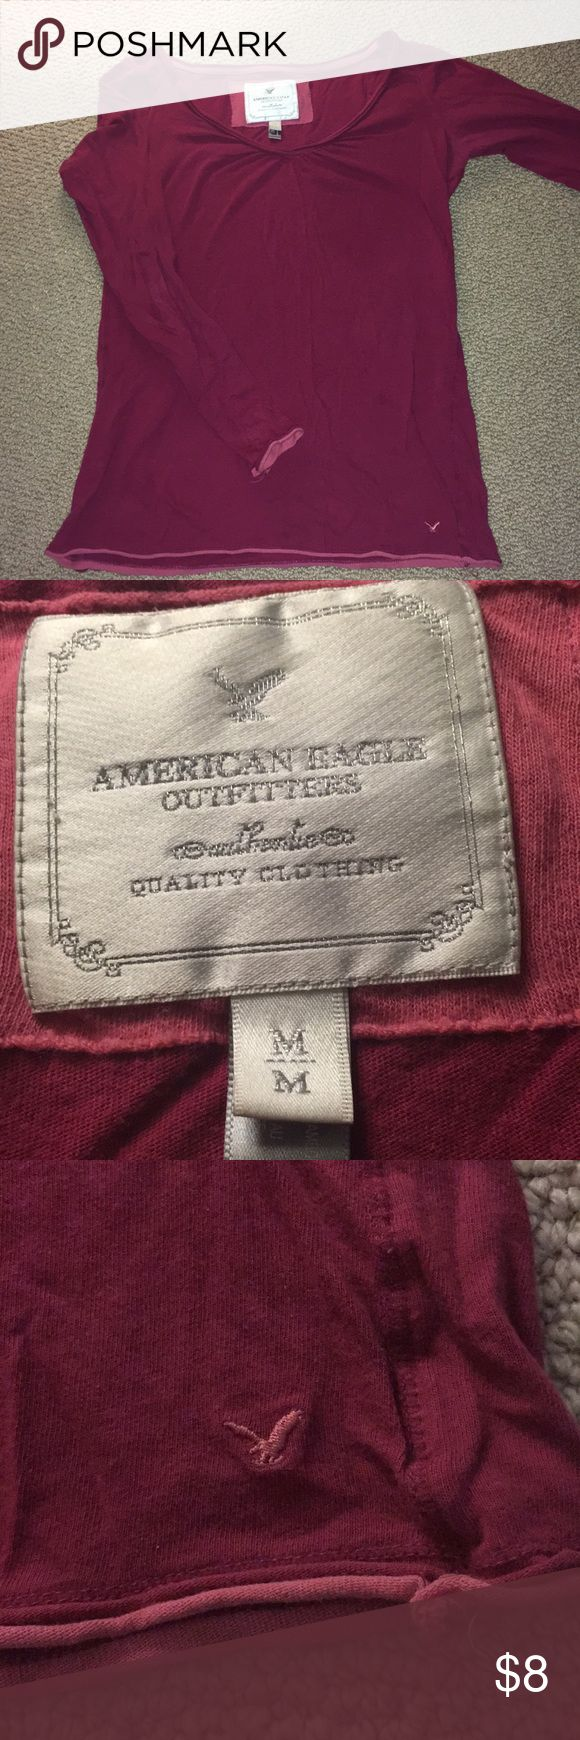 American Eagle Outfitters cranberry long sleeve t Cranberry colored American Eagle Outfitters long sleeve t. Bottom of shirt and sleeves are accented with a light pink material and the neckline is a slight v-neck. American Eagle Outfitters Tops Tees - Long Sleeve